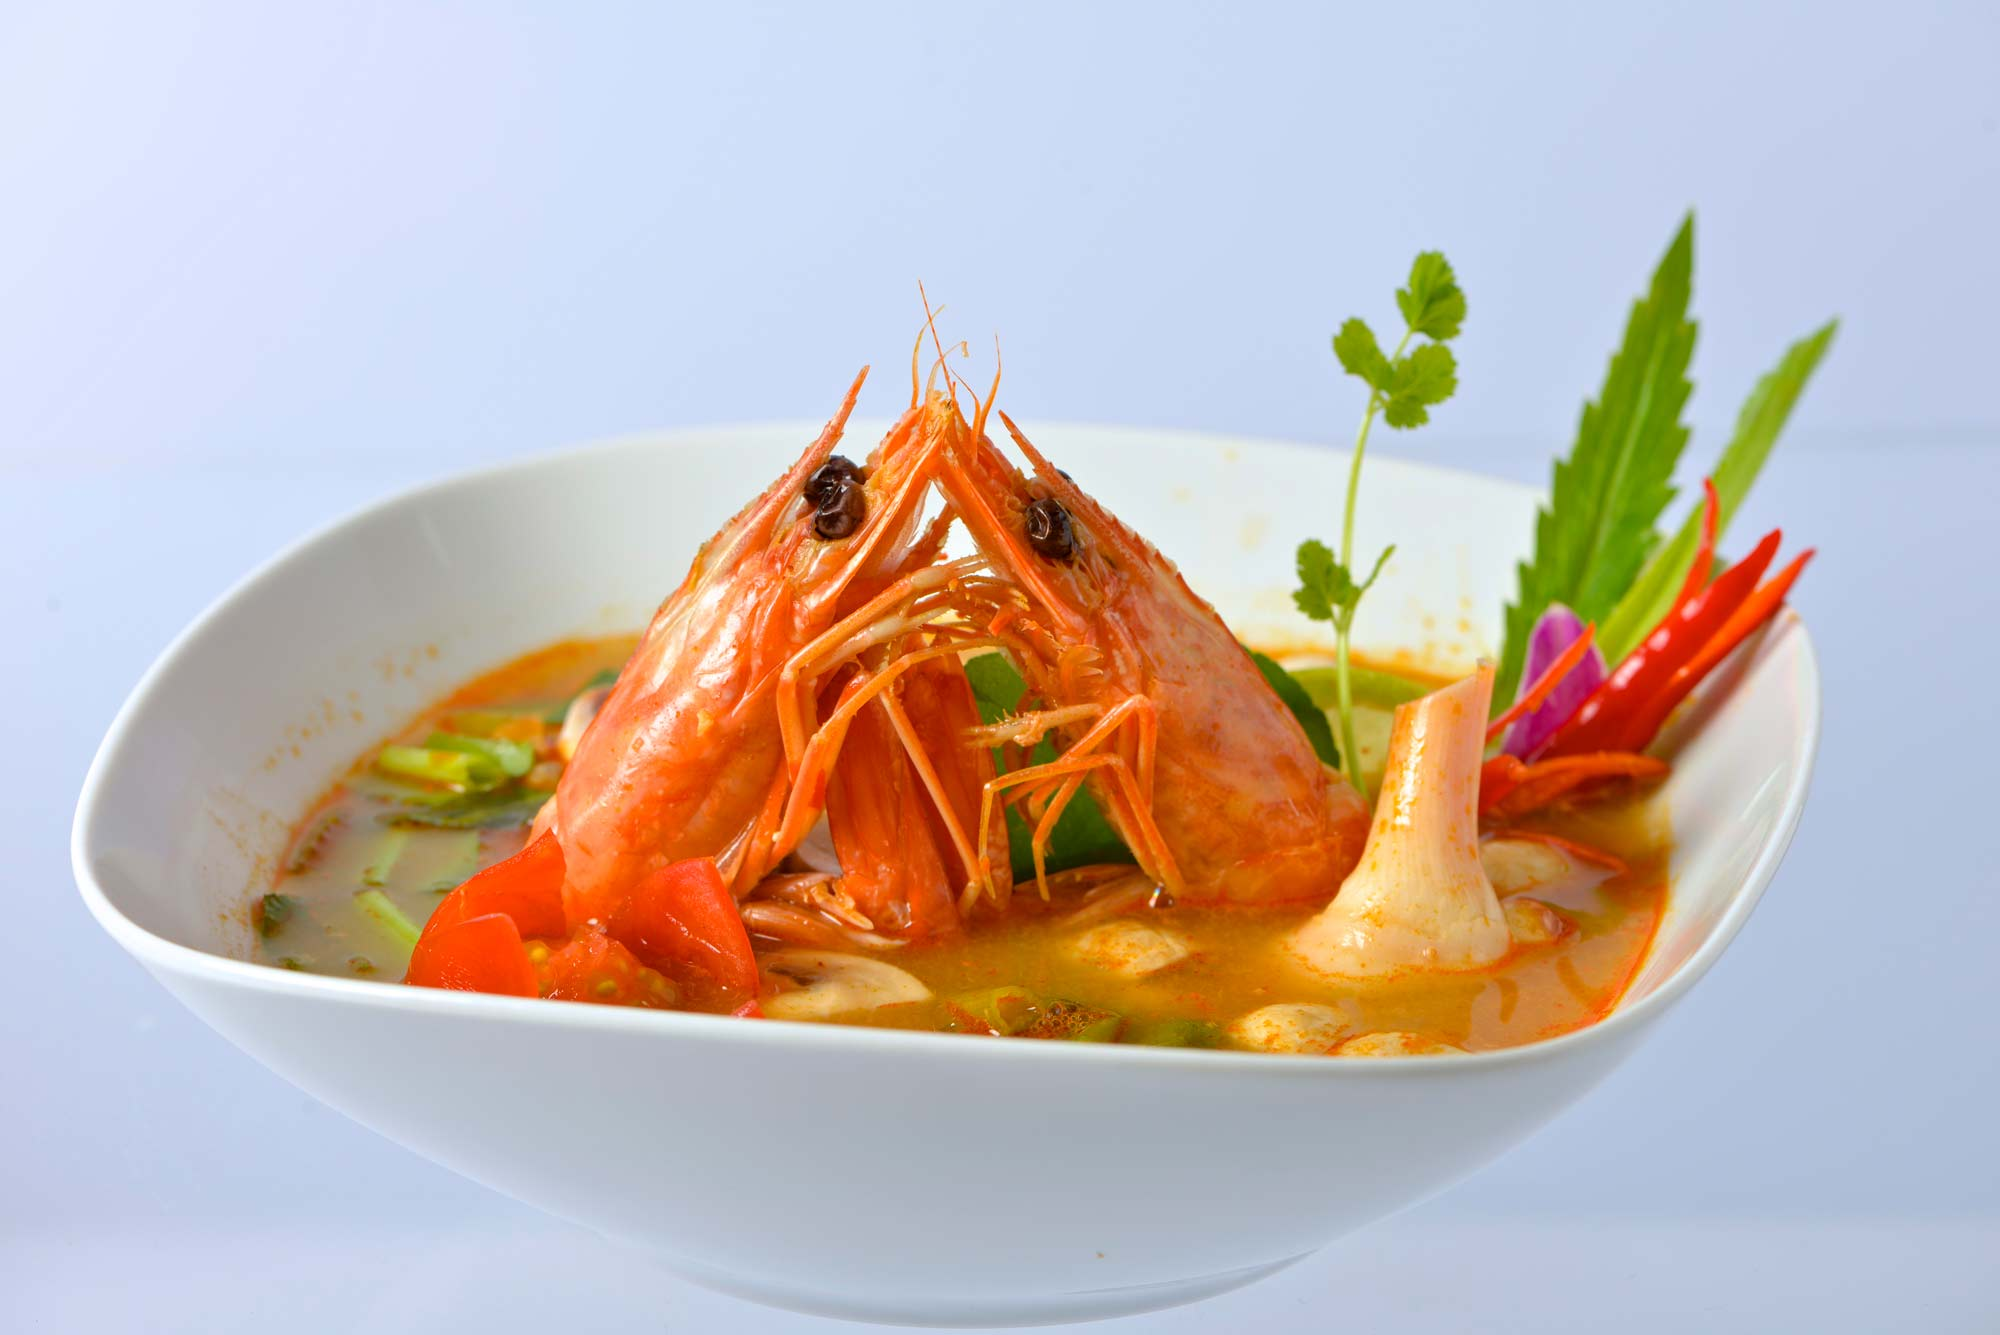 tom yam kung thai spicy soup geneva jom thai food